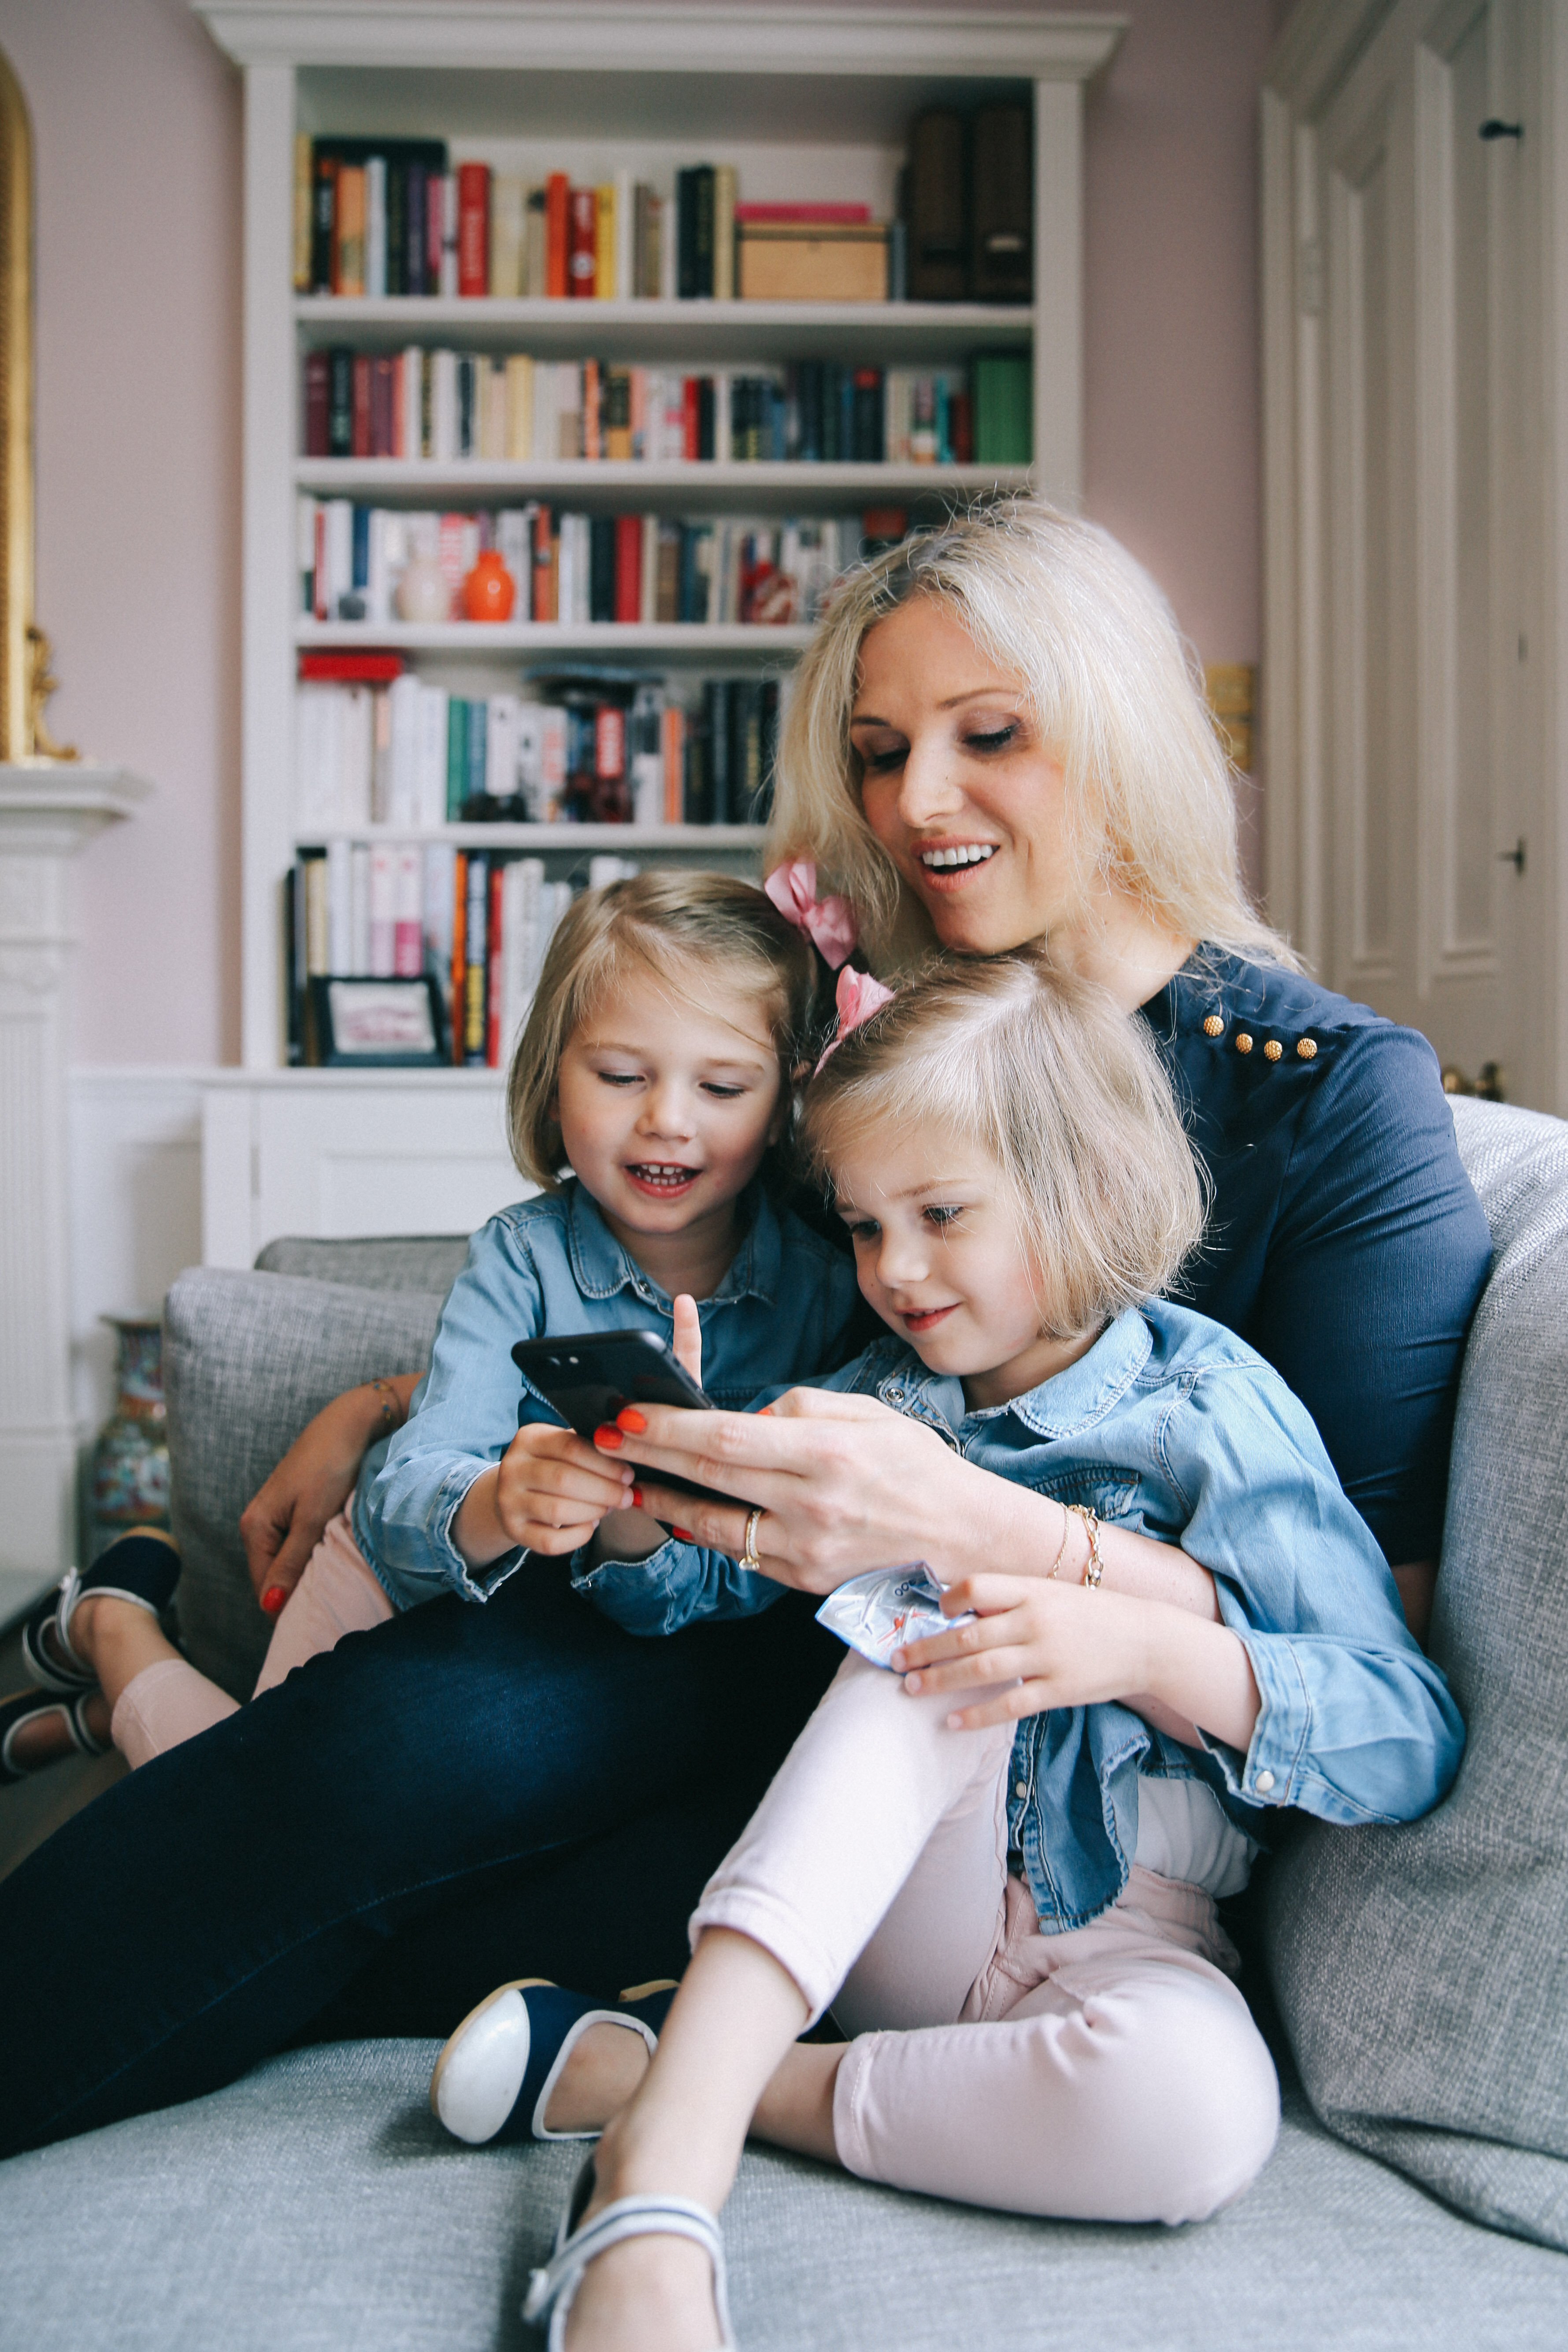 Julia Brucher and her twin daughters